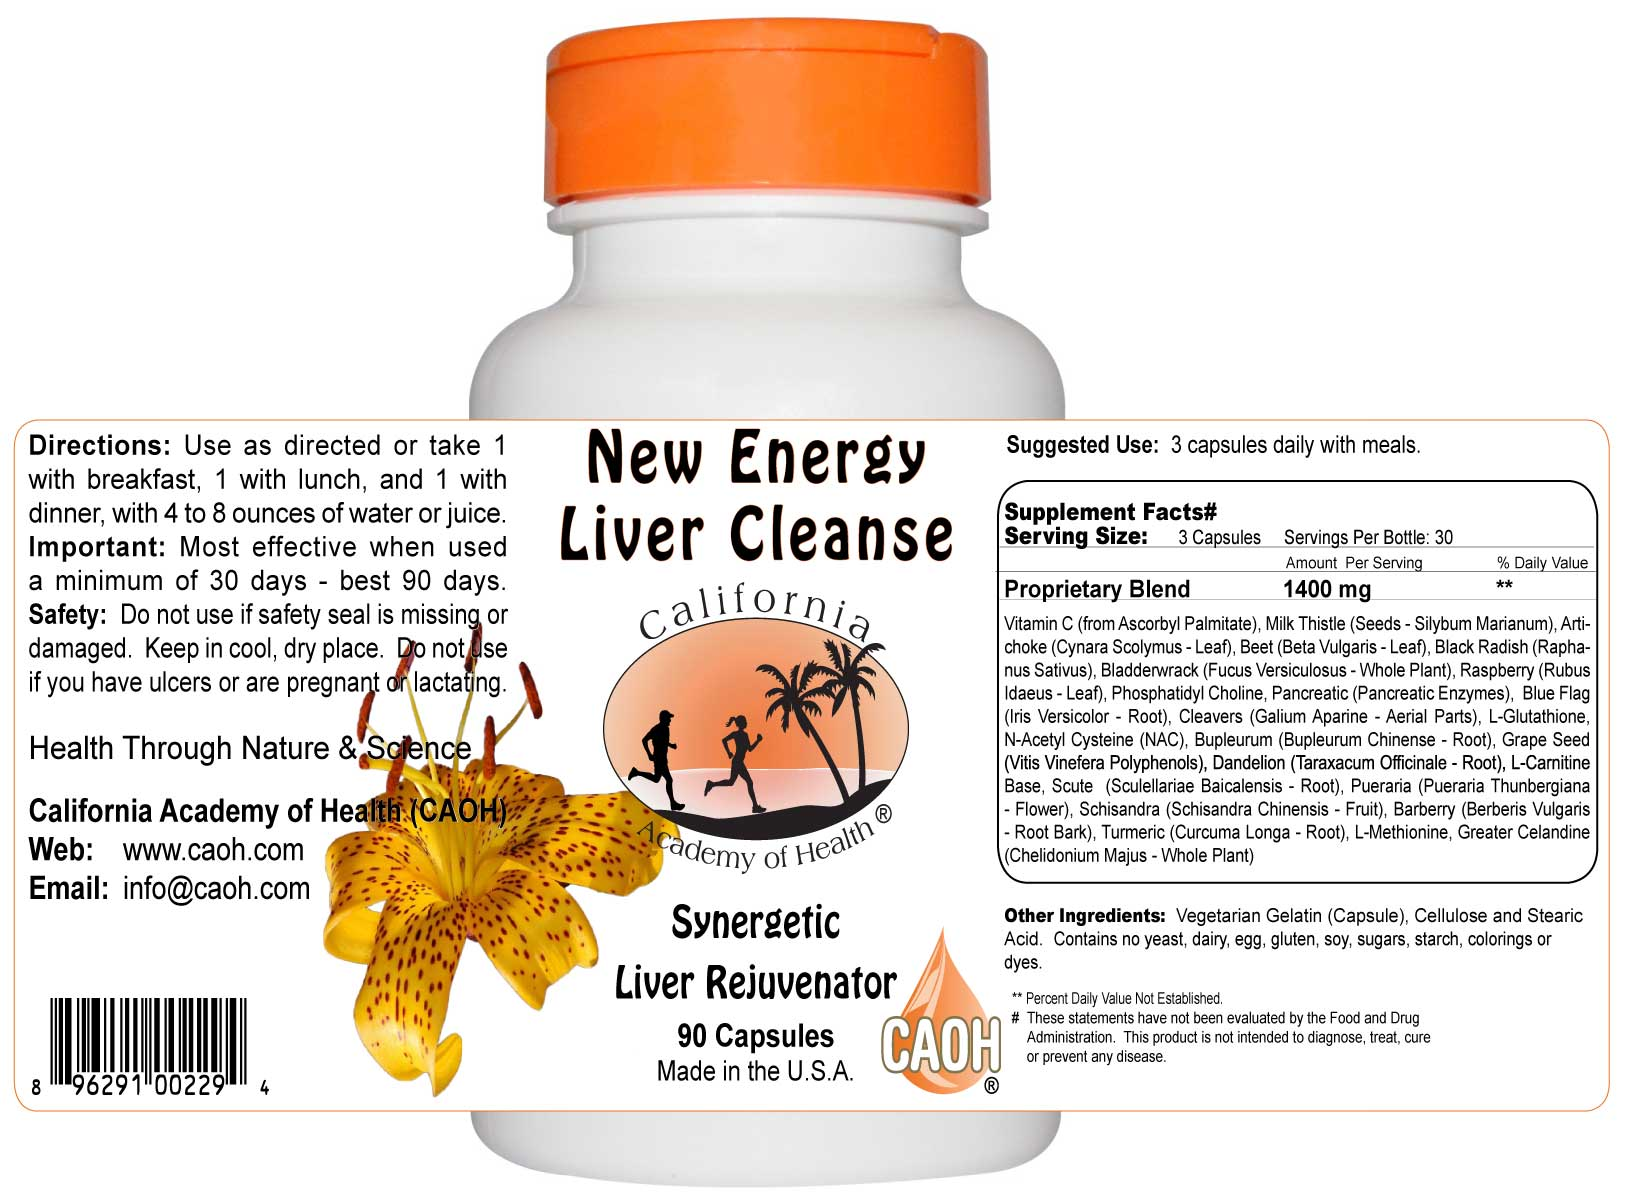 New Energy Liver Rejuvenator Capsules